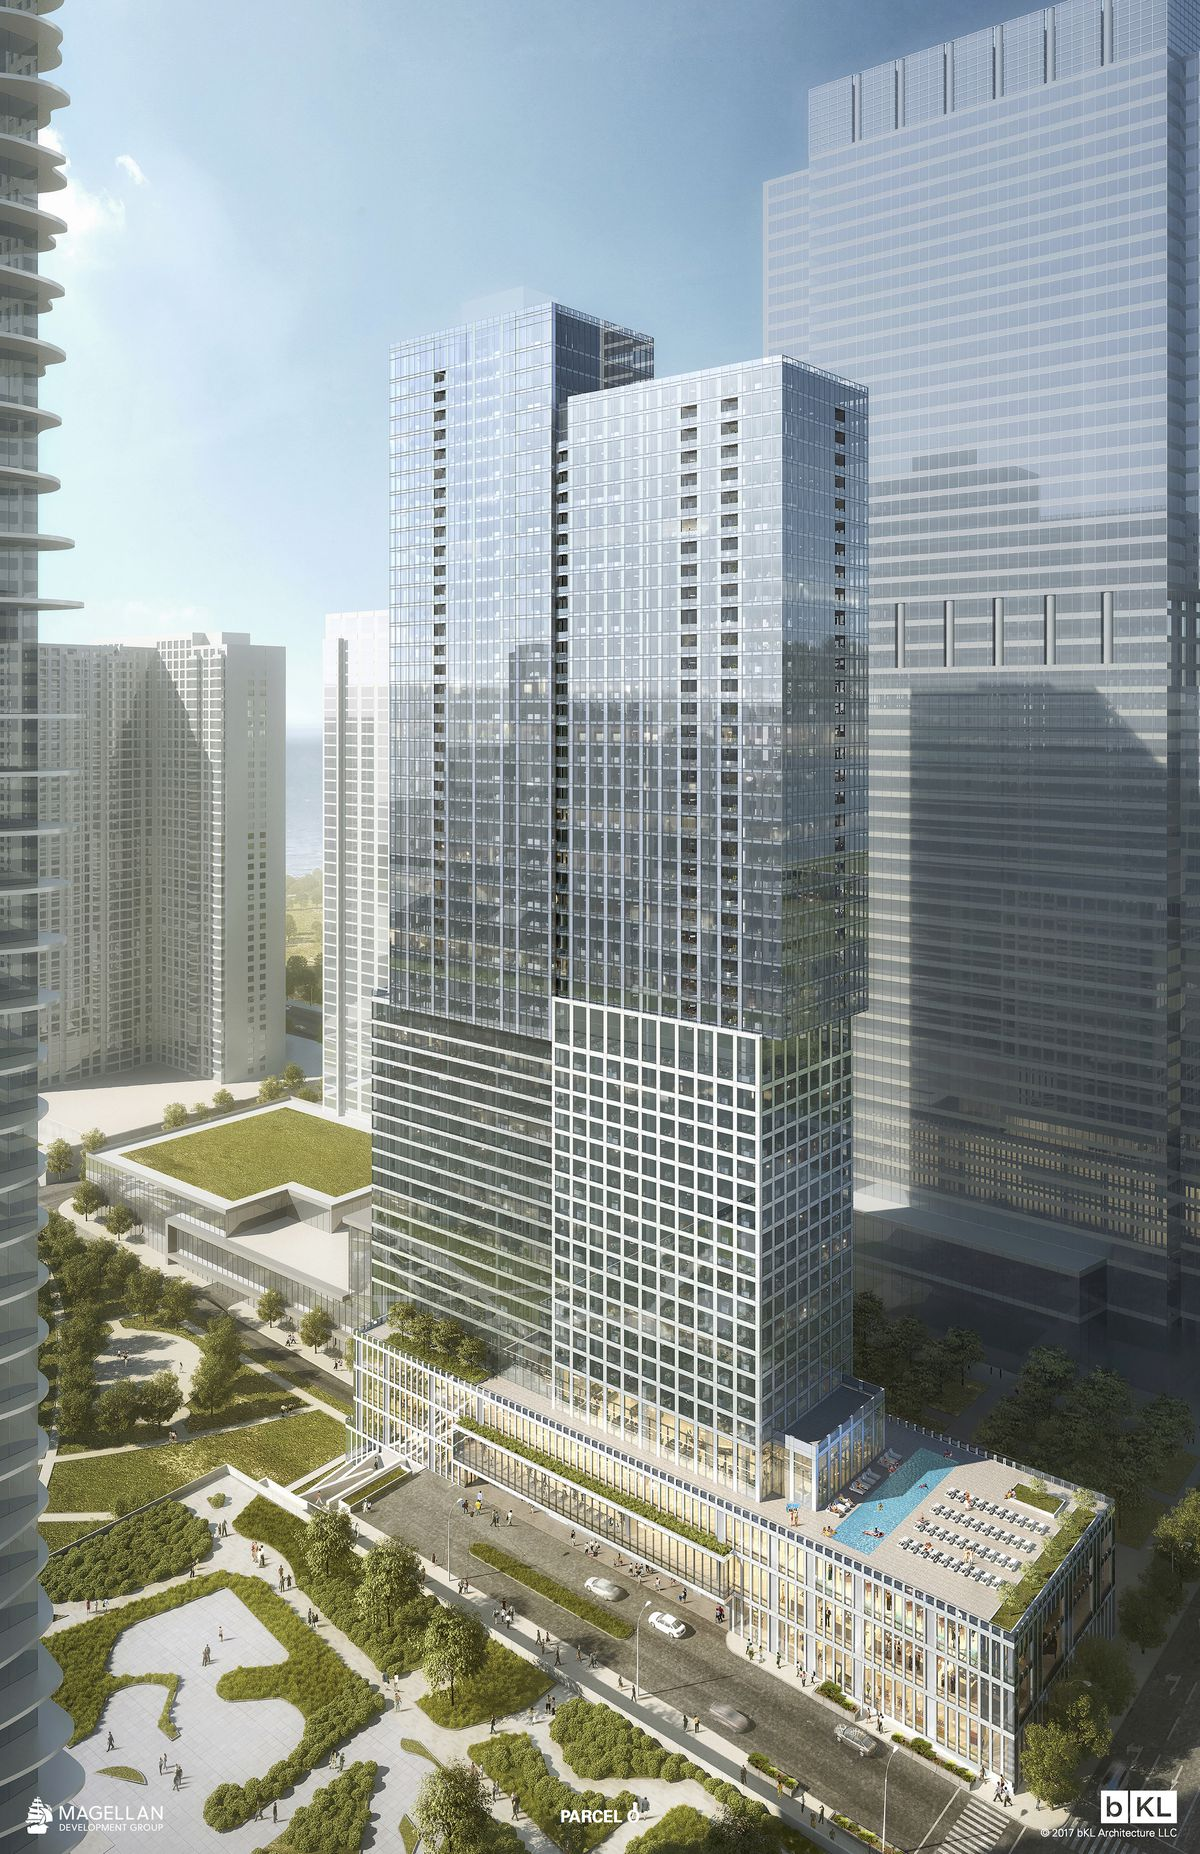 Proposed Towers For Lakeshore East Will Deliver Thousands